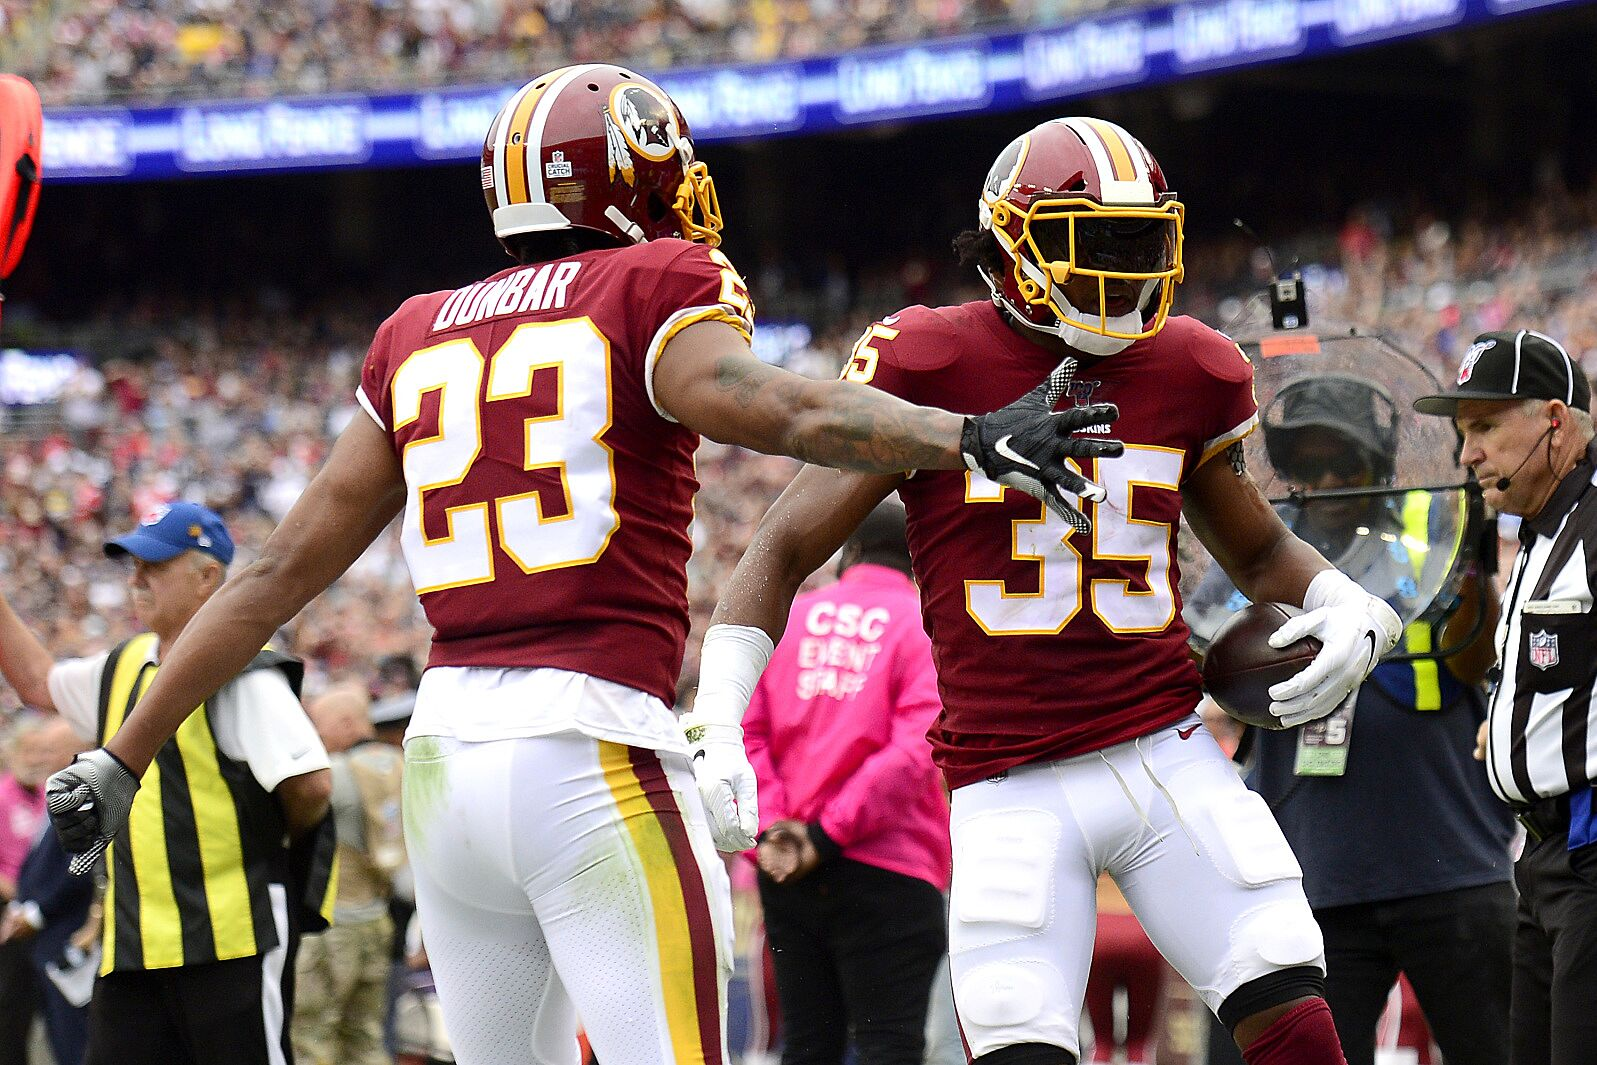 Redskins vs. Dolphins: Previewing Bill Callahan's head coach debut, matchups to watch, more